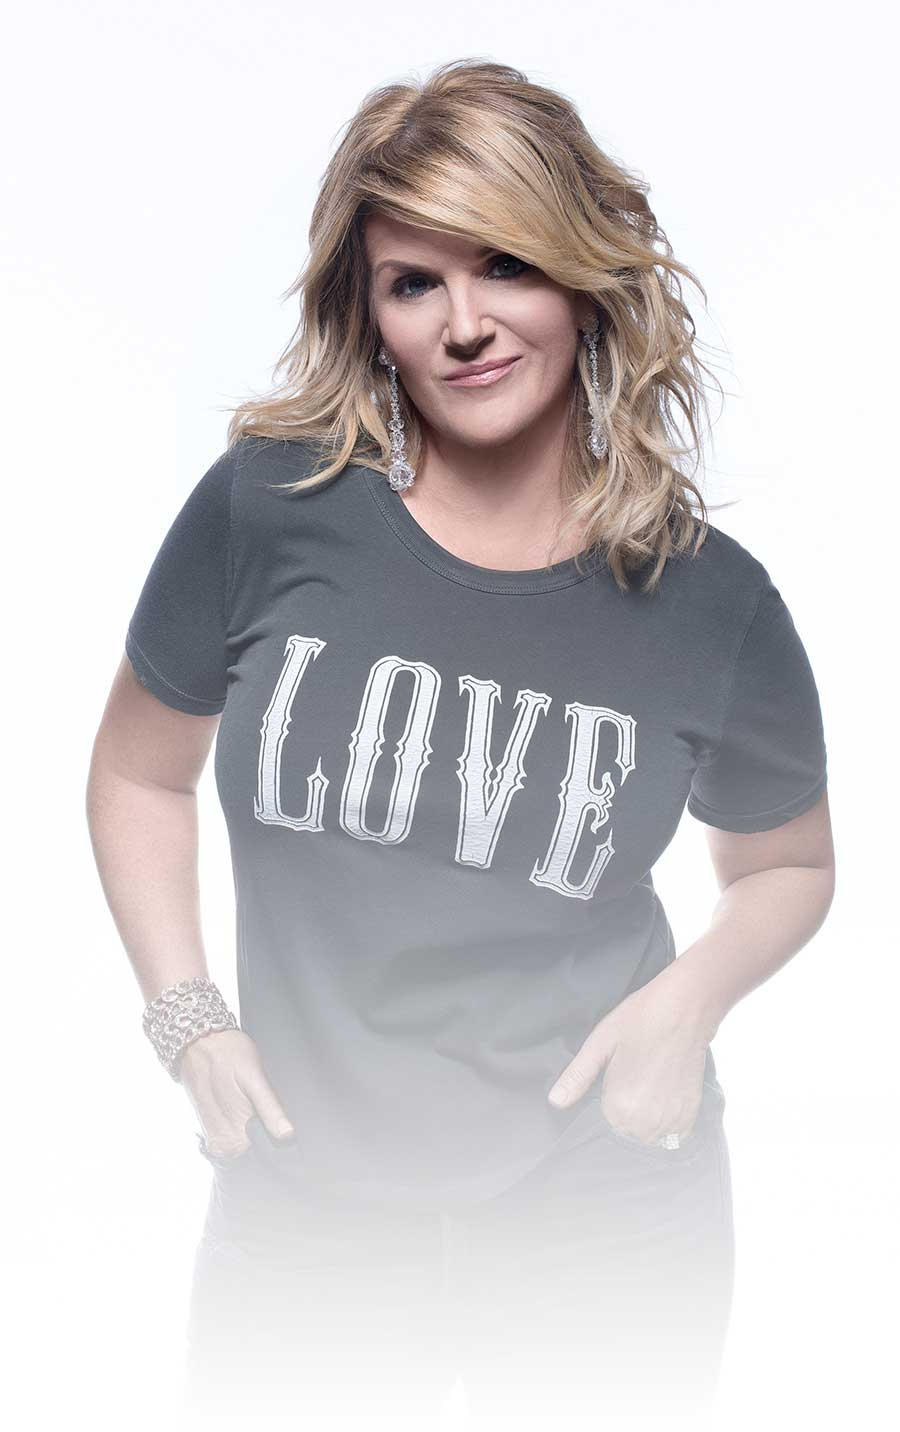 Trisha Yearwood in Love tee